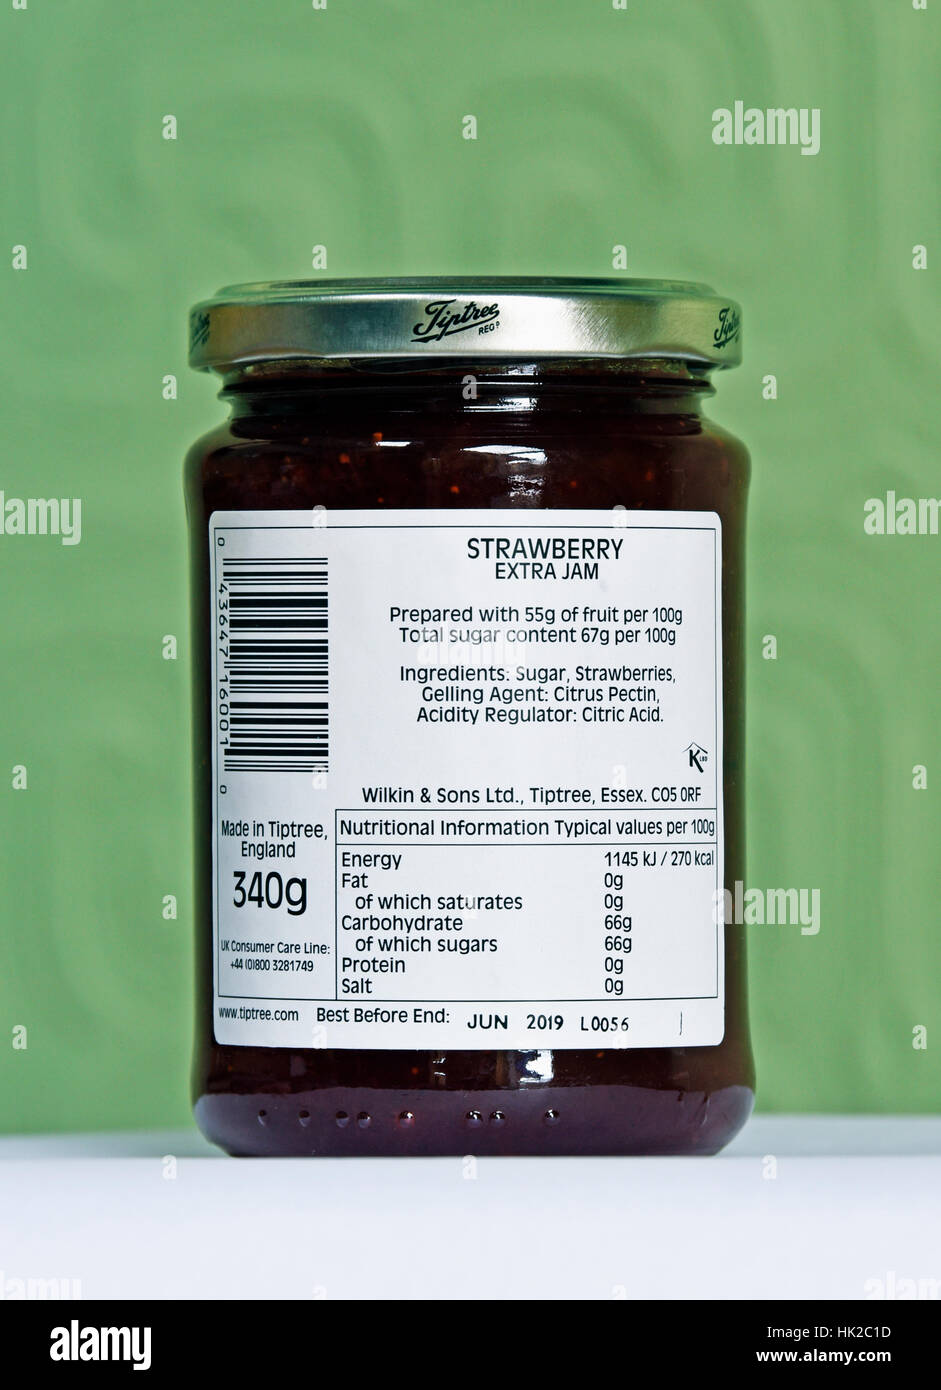 Ingredients and Nutritional Information. Jar of Wilkin & Sons Ltd., Tiptree Strawberry Conserve. - Stock Image